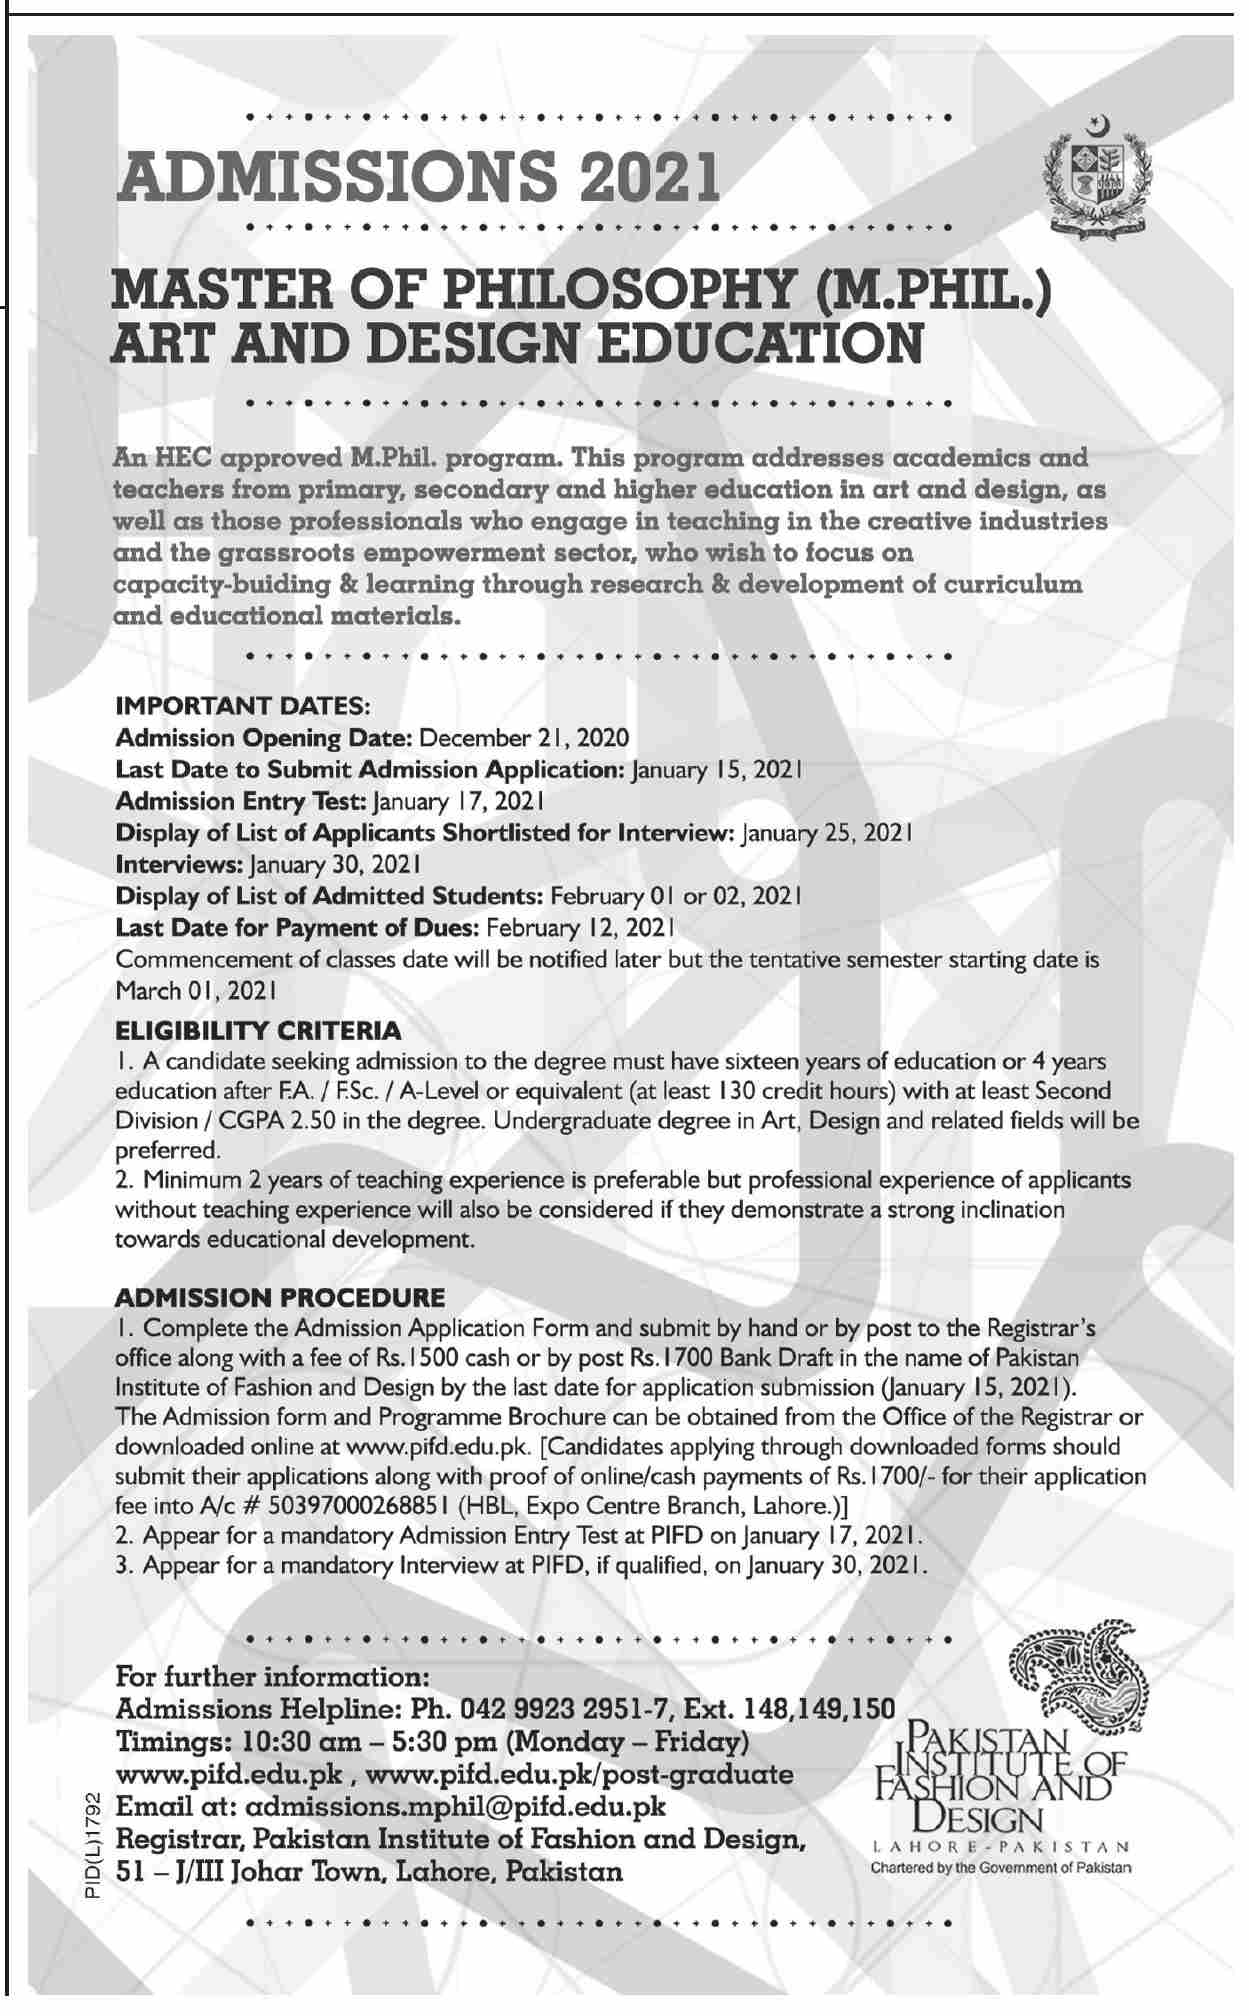 Pakistan Institute of Fashion and Design PIFD Lahore Admission 2021